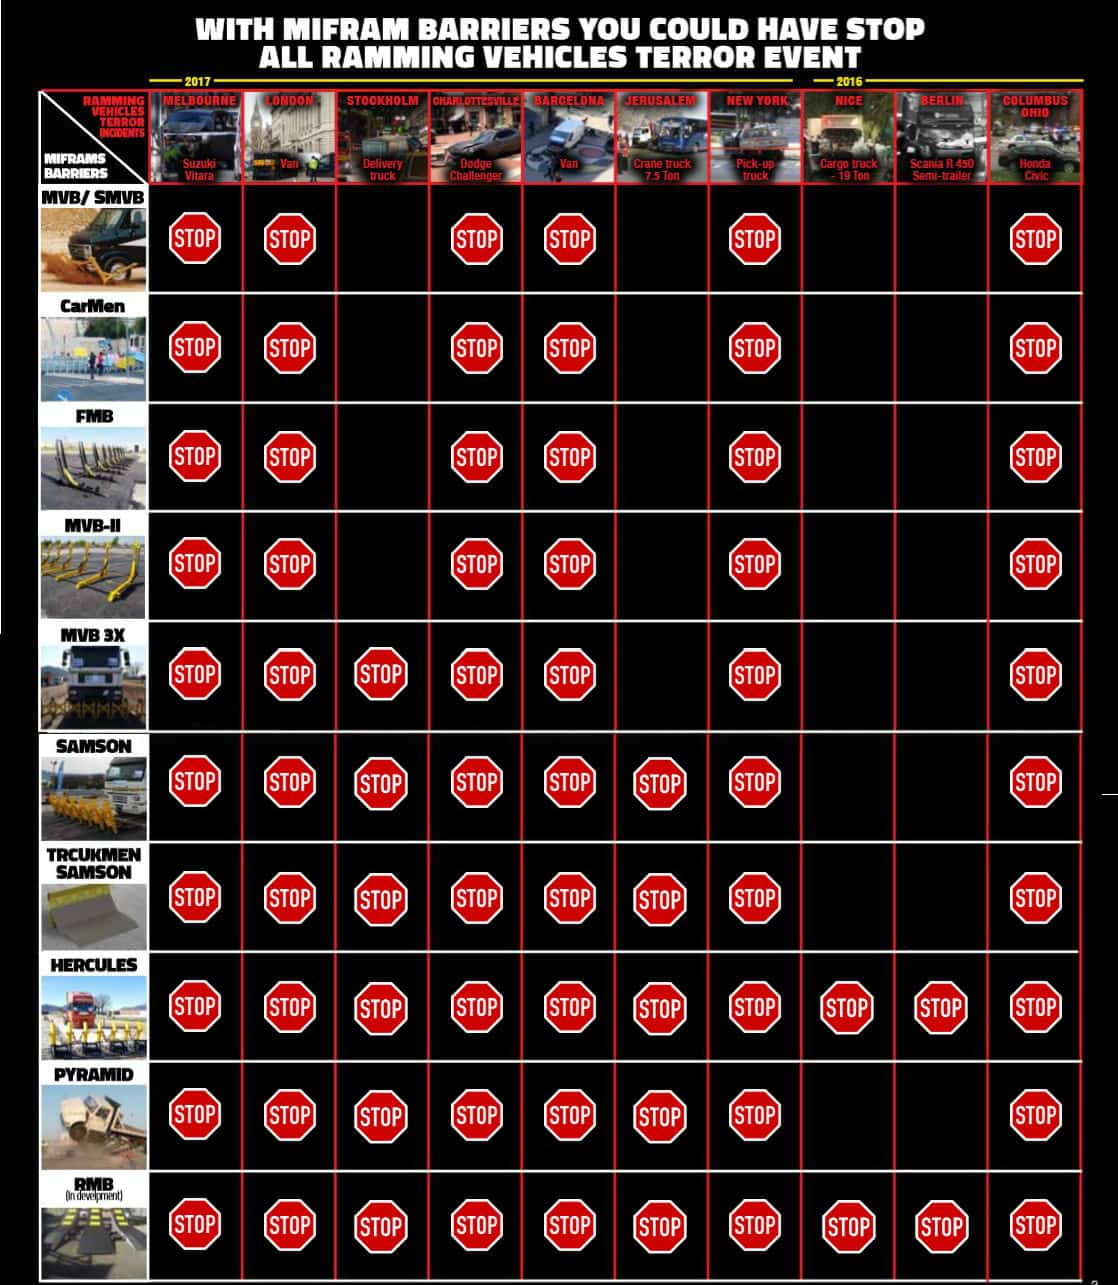 Table of Vehicle barriers that could stop specific Ramming vehicle terror events